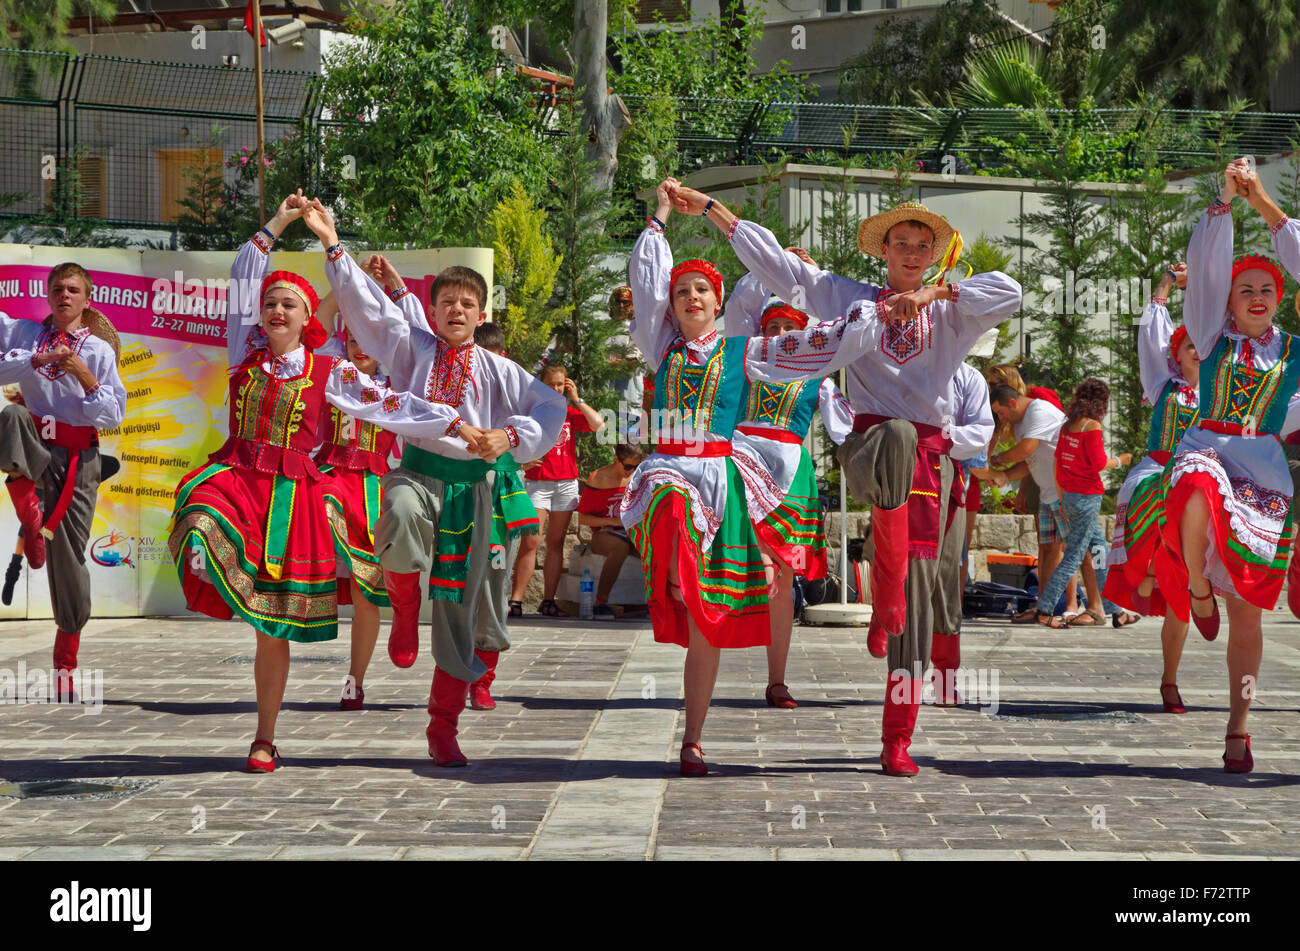 Traditional folk dance festival at Bodrum, Turkey. - Stock Image